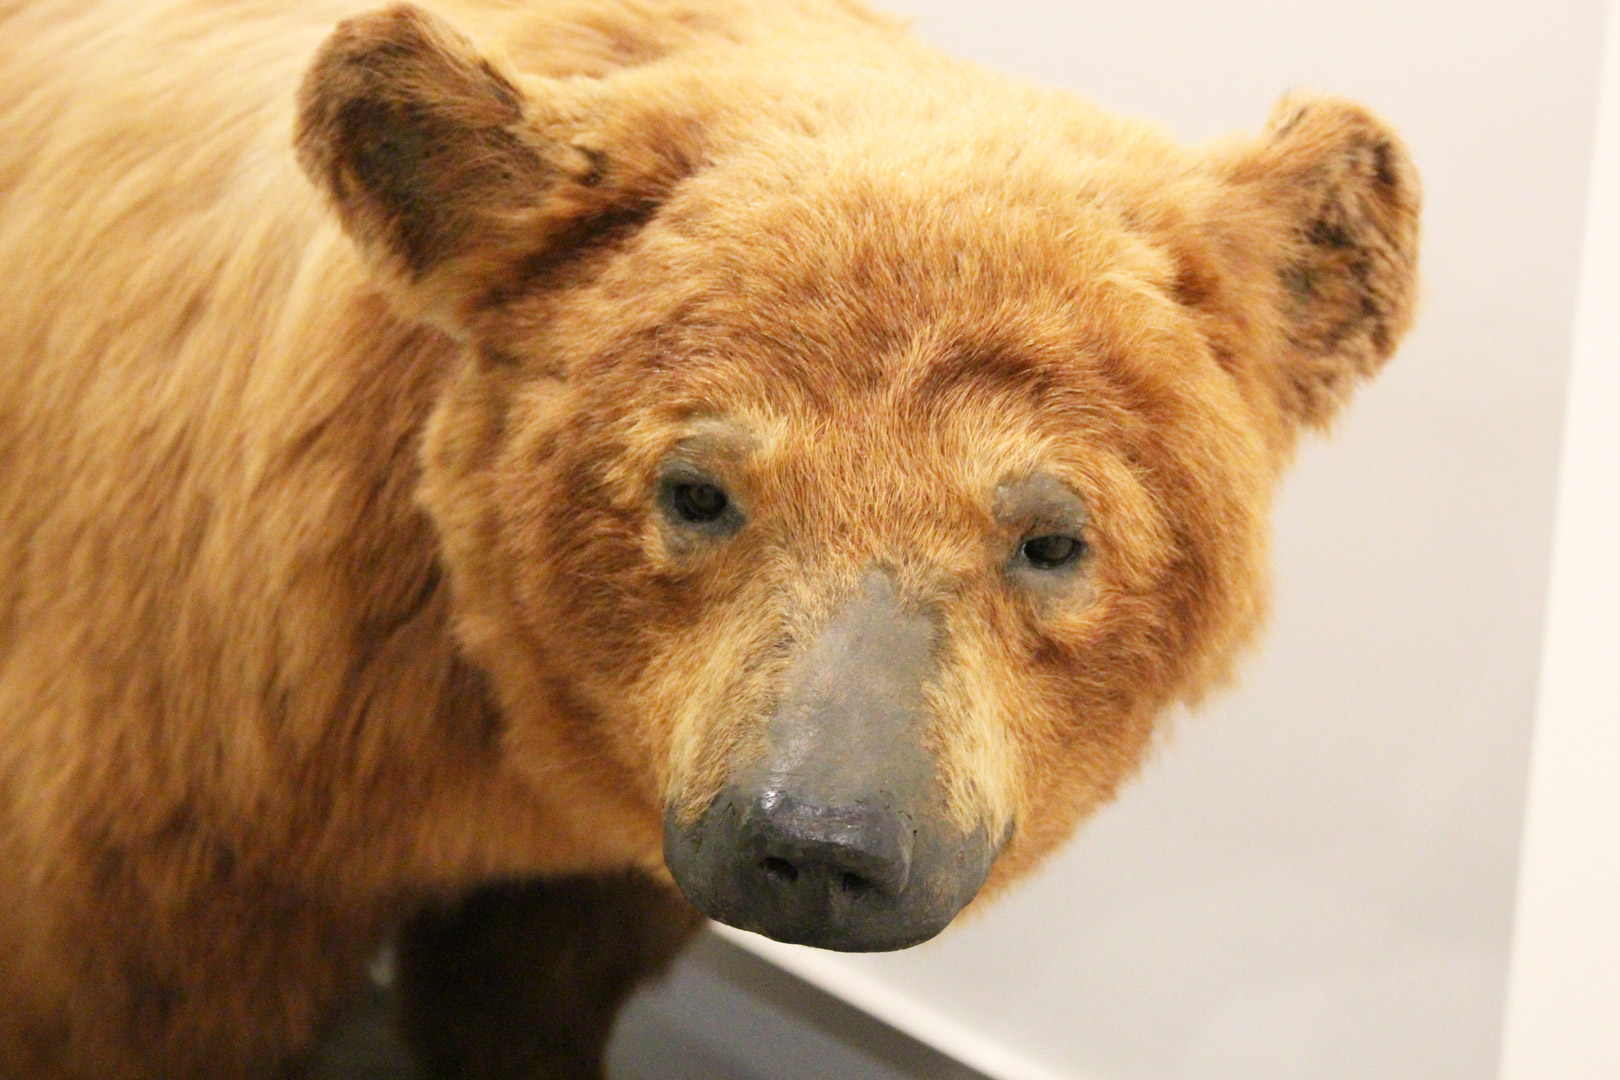 A bear specimen from the Canadian Museum of Nature's important mammal collection accompanies Marian Engel's novel, Bear.